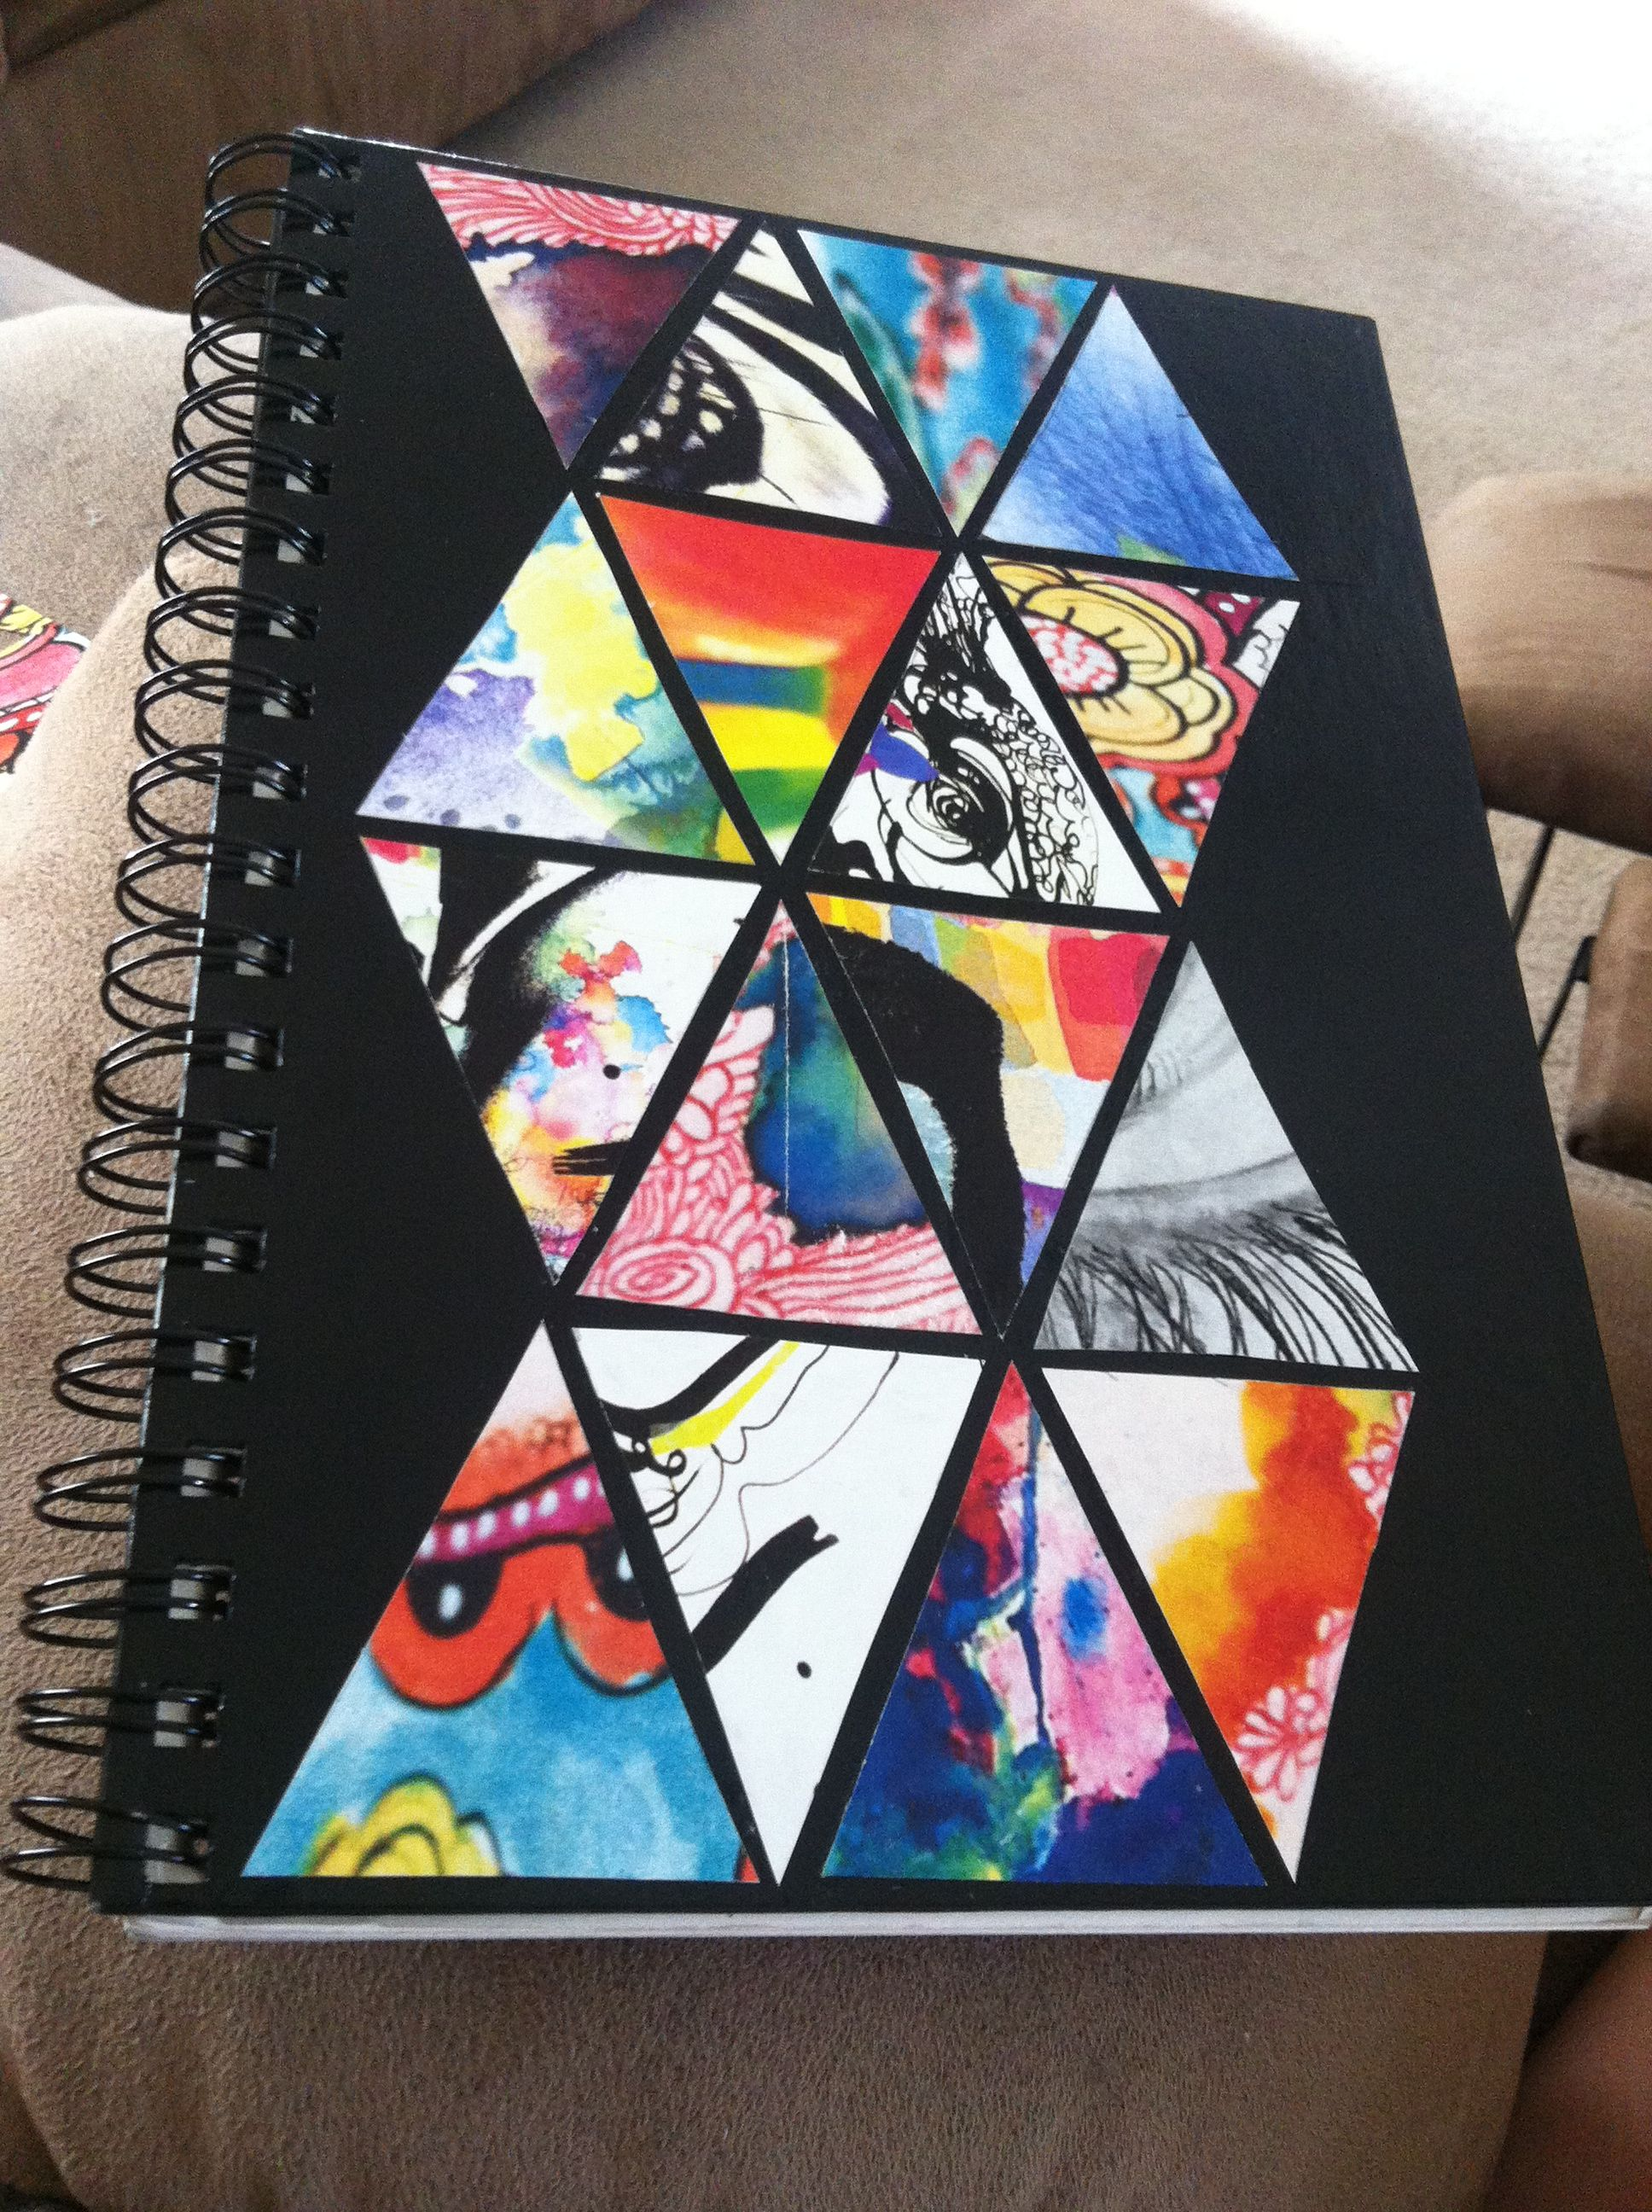 Diy journal make a different design on each triangle